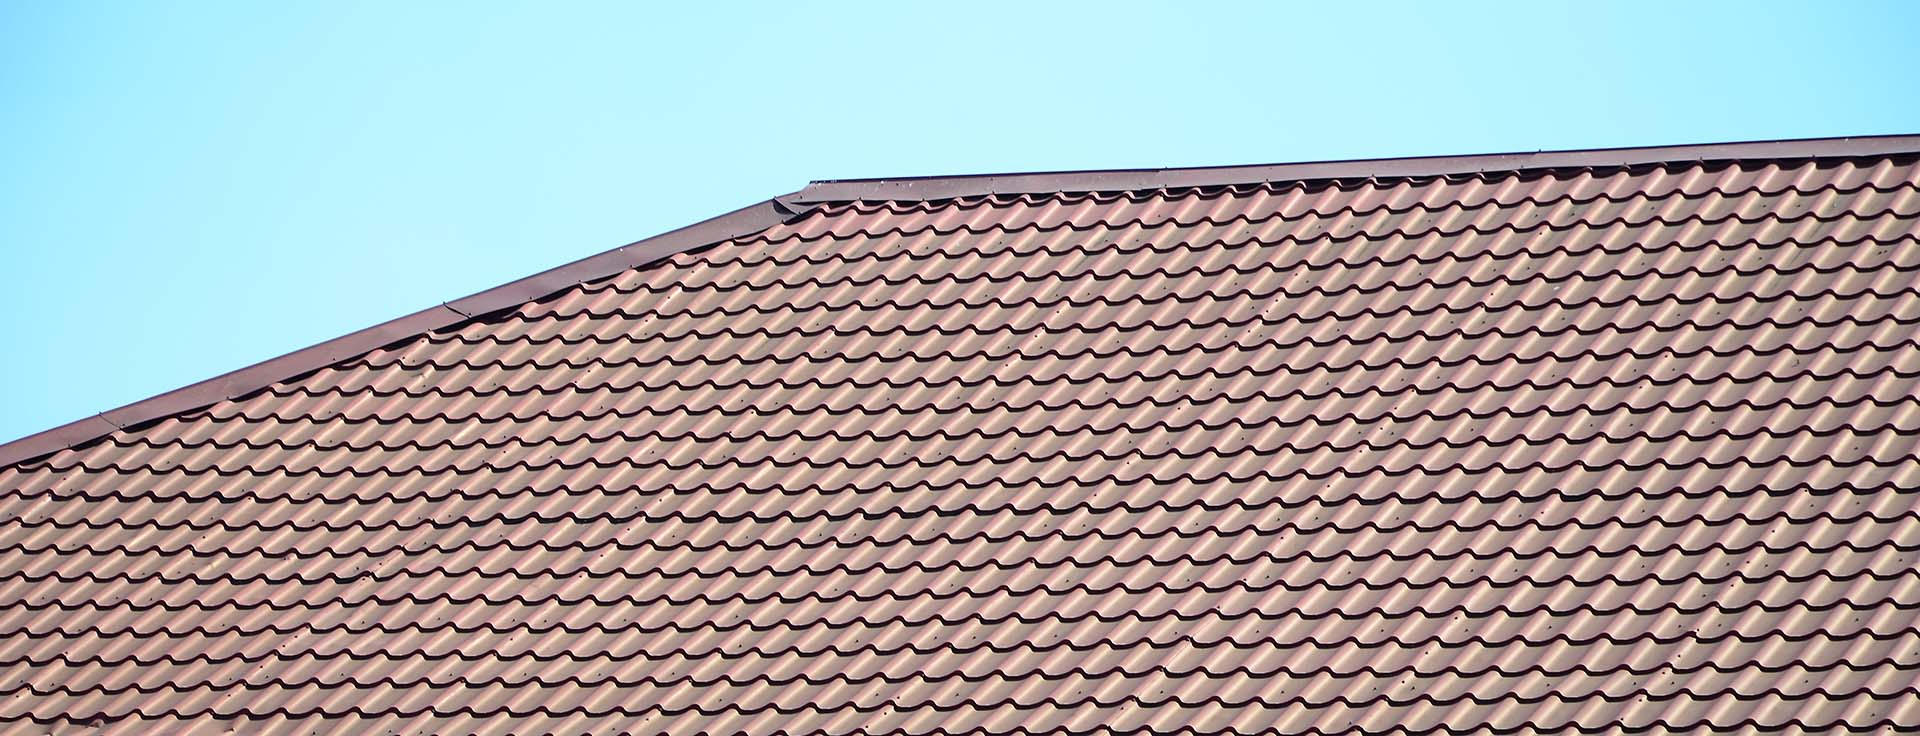 Key factors to consider when choosing a roofing material